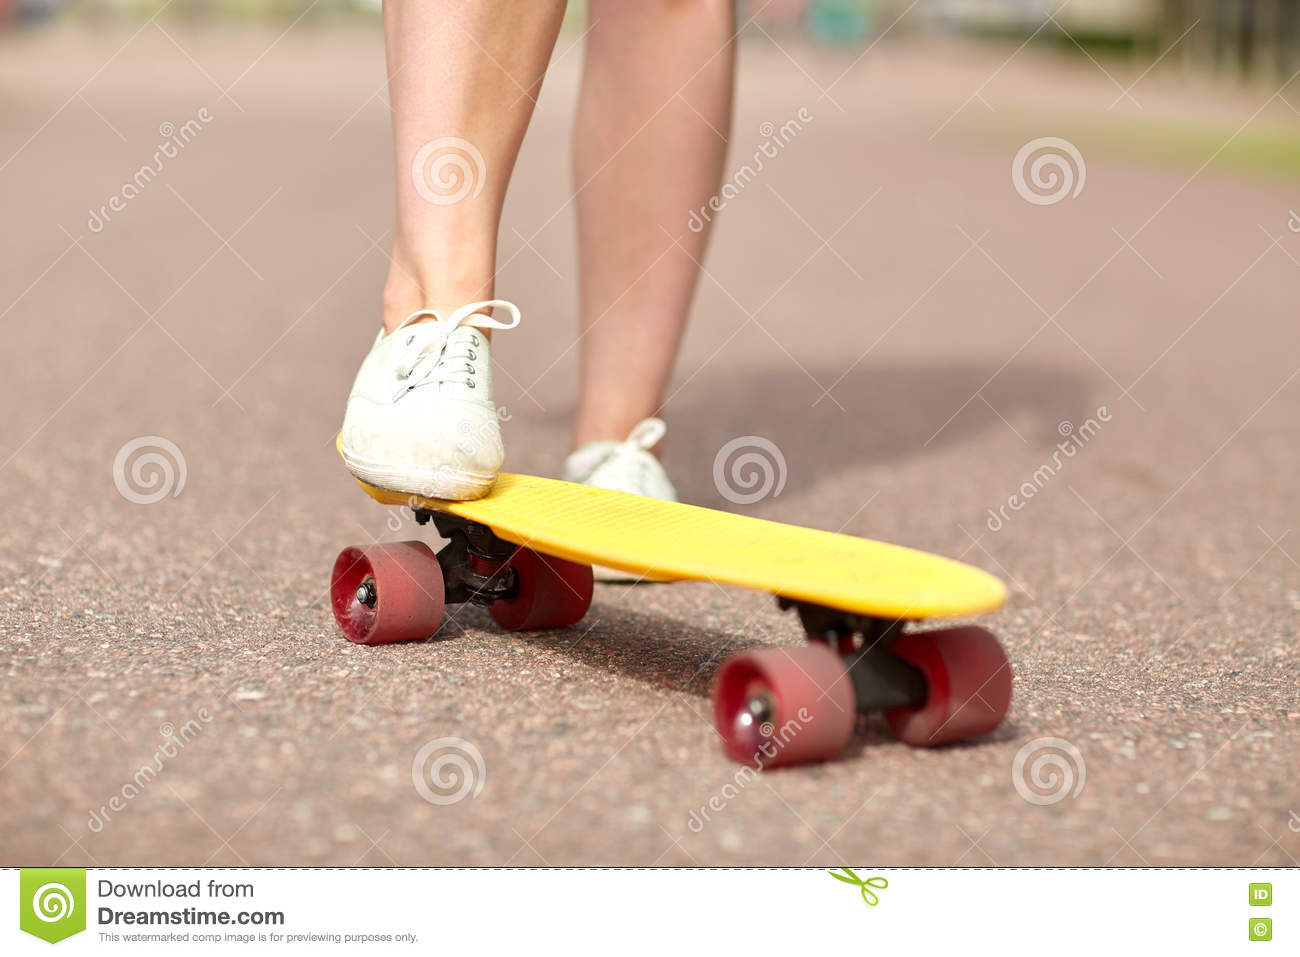 Close Up Of Female Feet Riding Short Skateboard Stock Image Image Of Goofy Foot 77359837